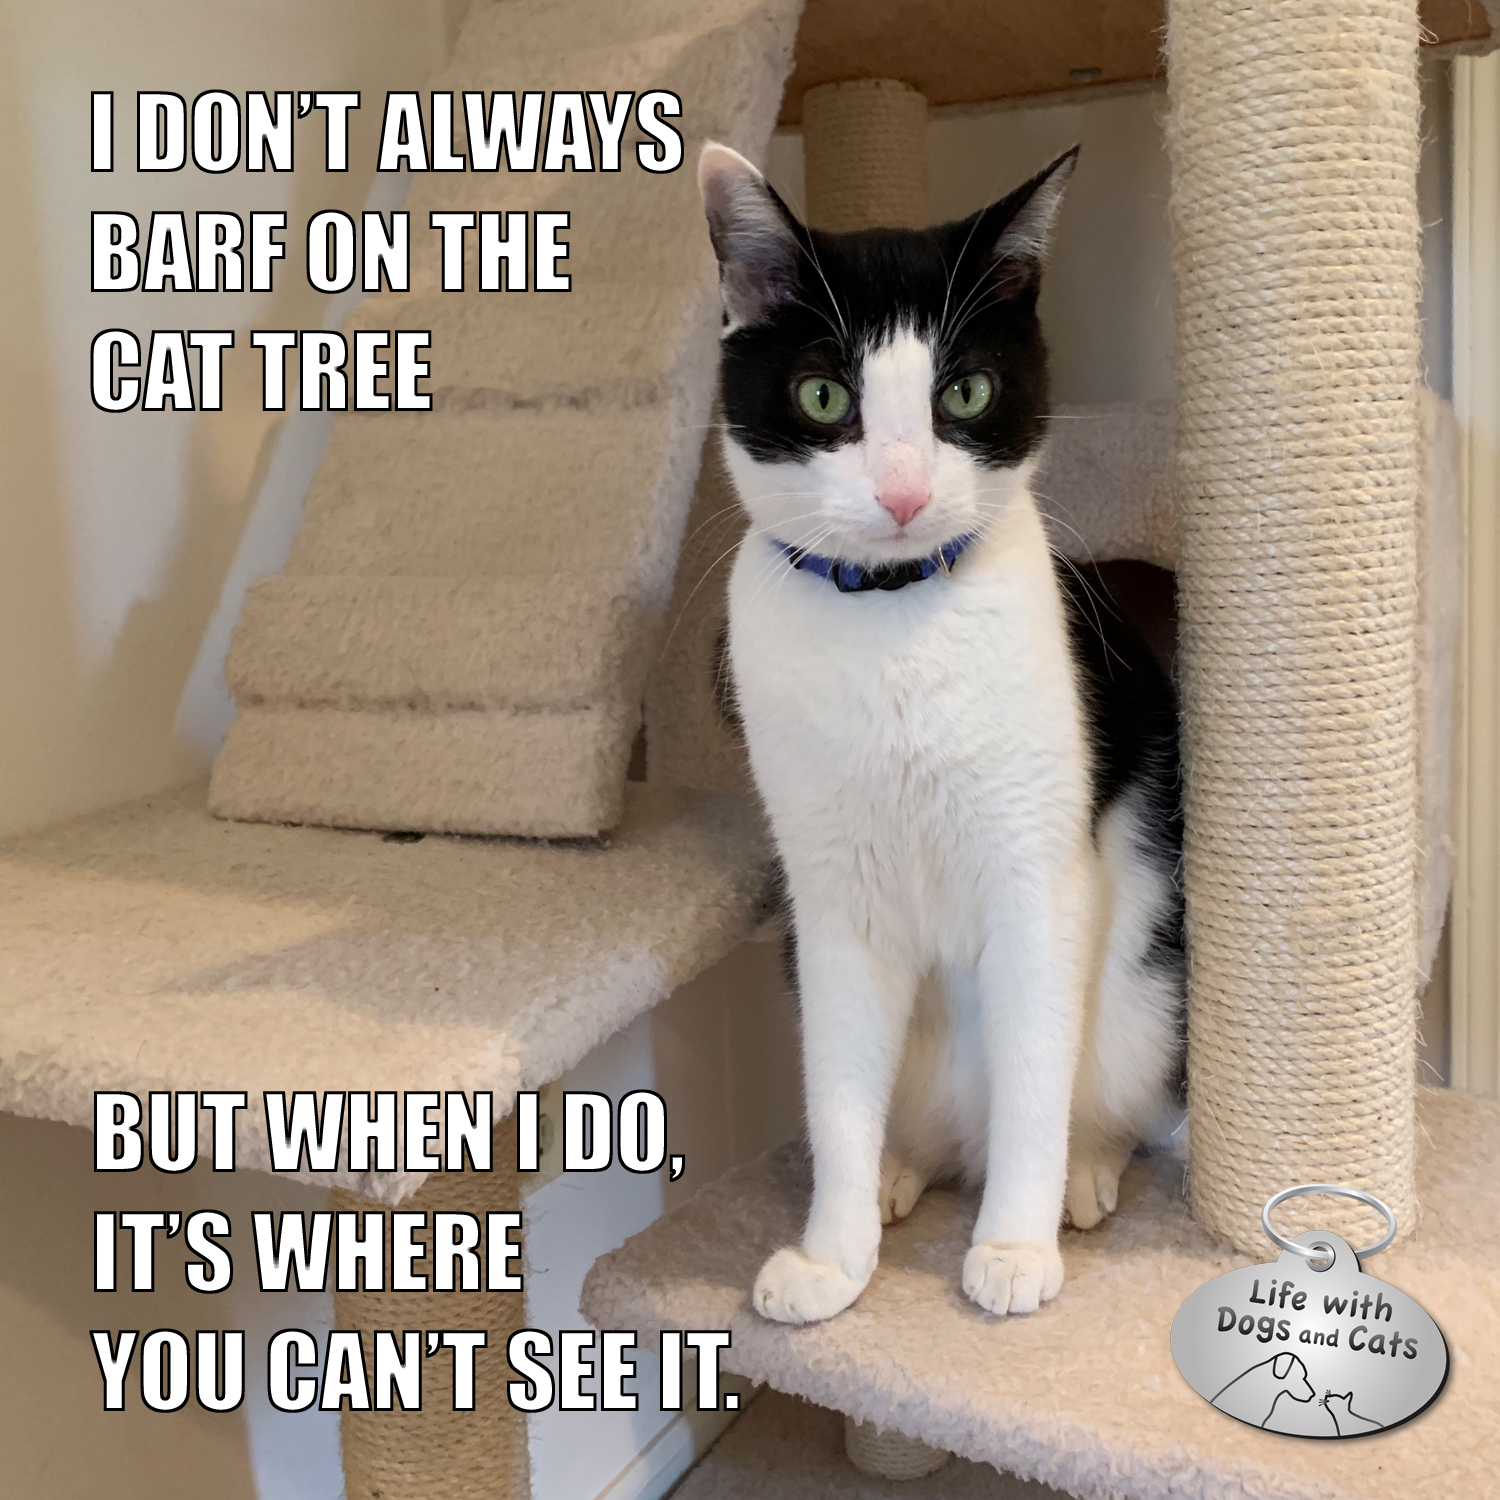 I Don't Always Barf On The Cat Tree But when I do, it's where you can't see it. #TheMostInterestingCatInTheWorld